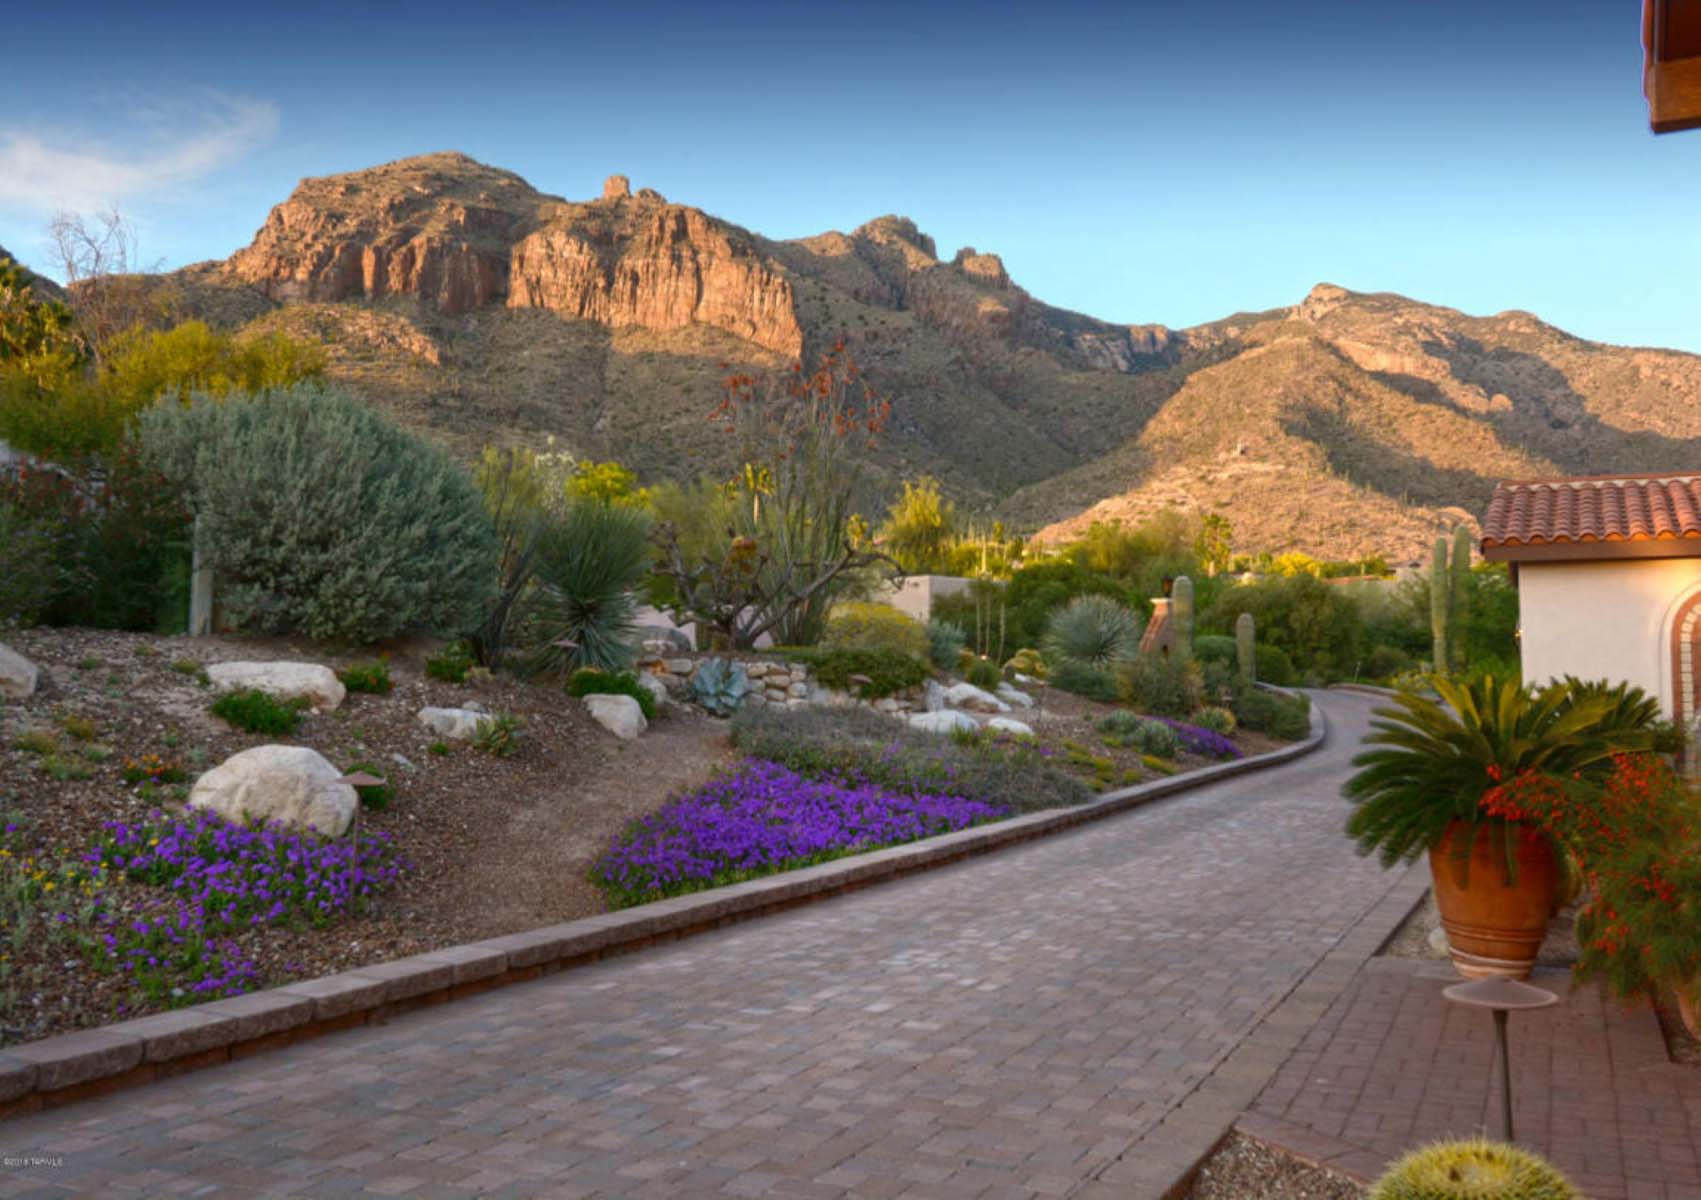 Single Family Home for Sale at Custom Catalina Foothills home in the quiet, gated community of Cobblestone. 3200 E Crest Shadows Drive Tucson, Arizona 85718 United States